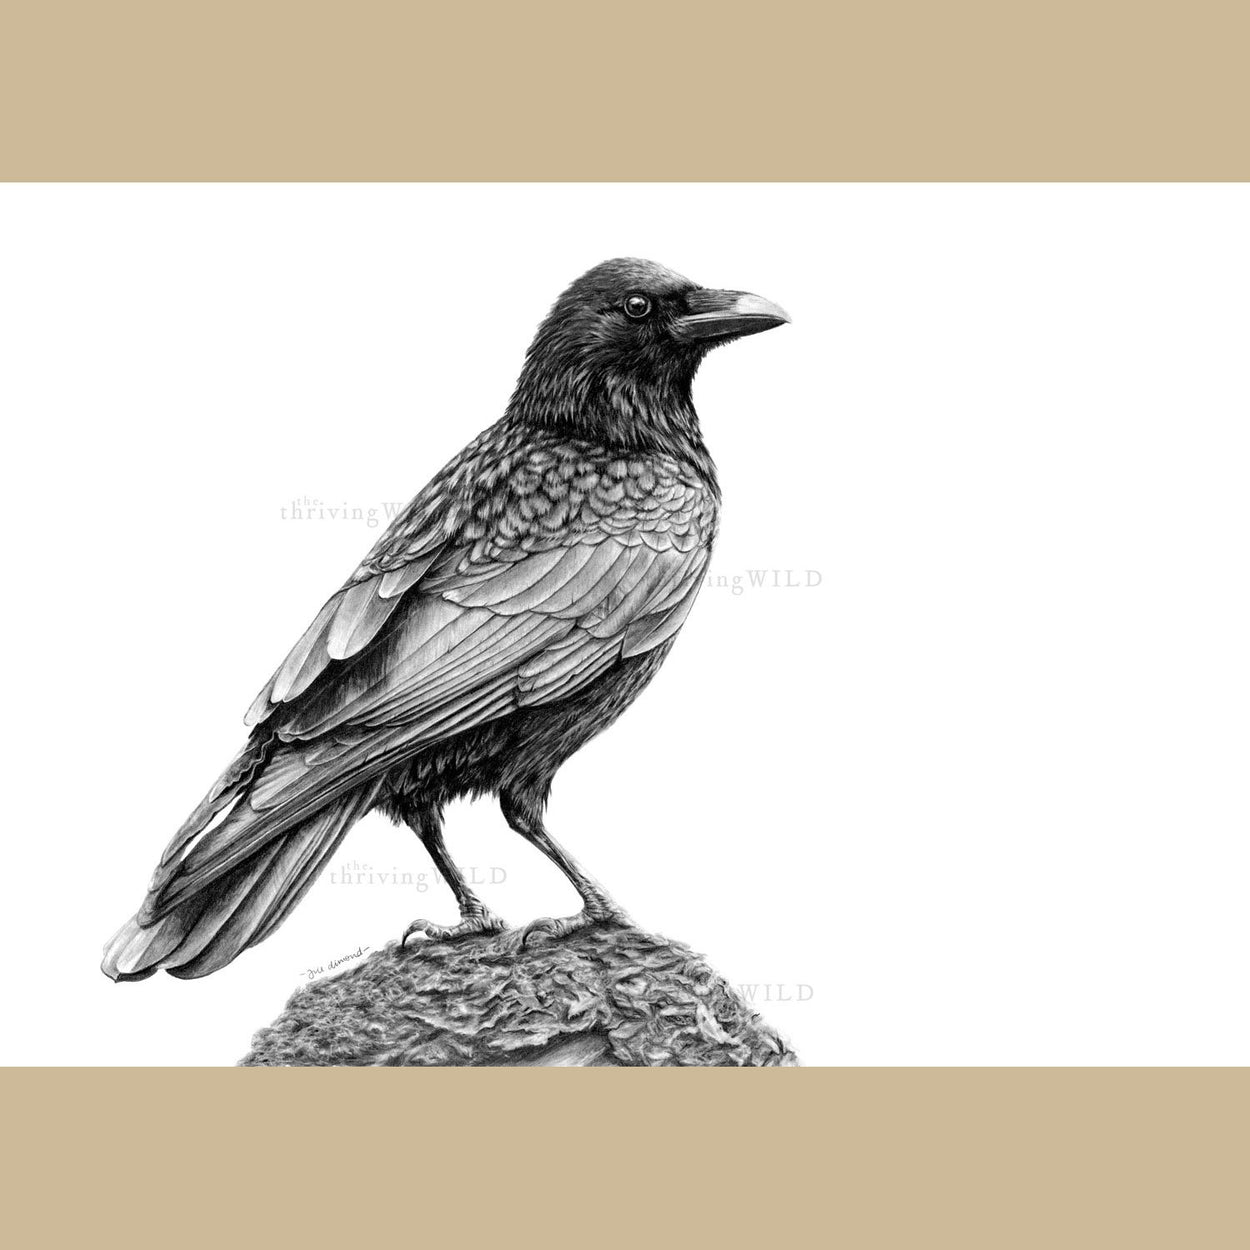 Crow Pencil Drawing - The Thriving Wild Jill Dimond